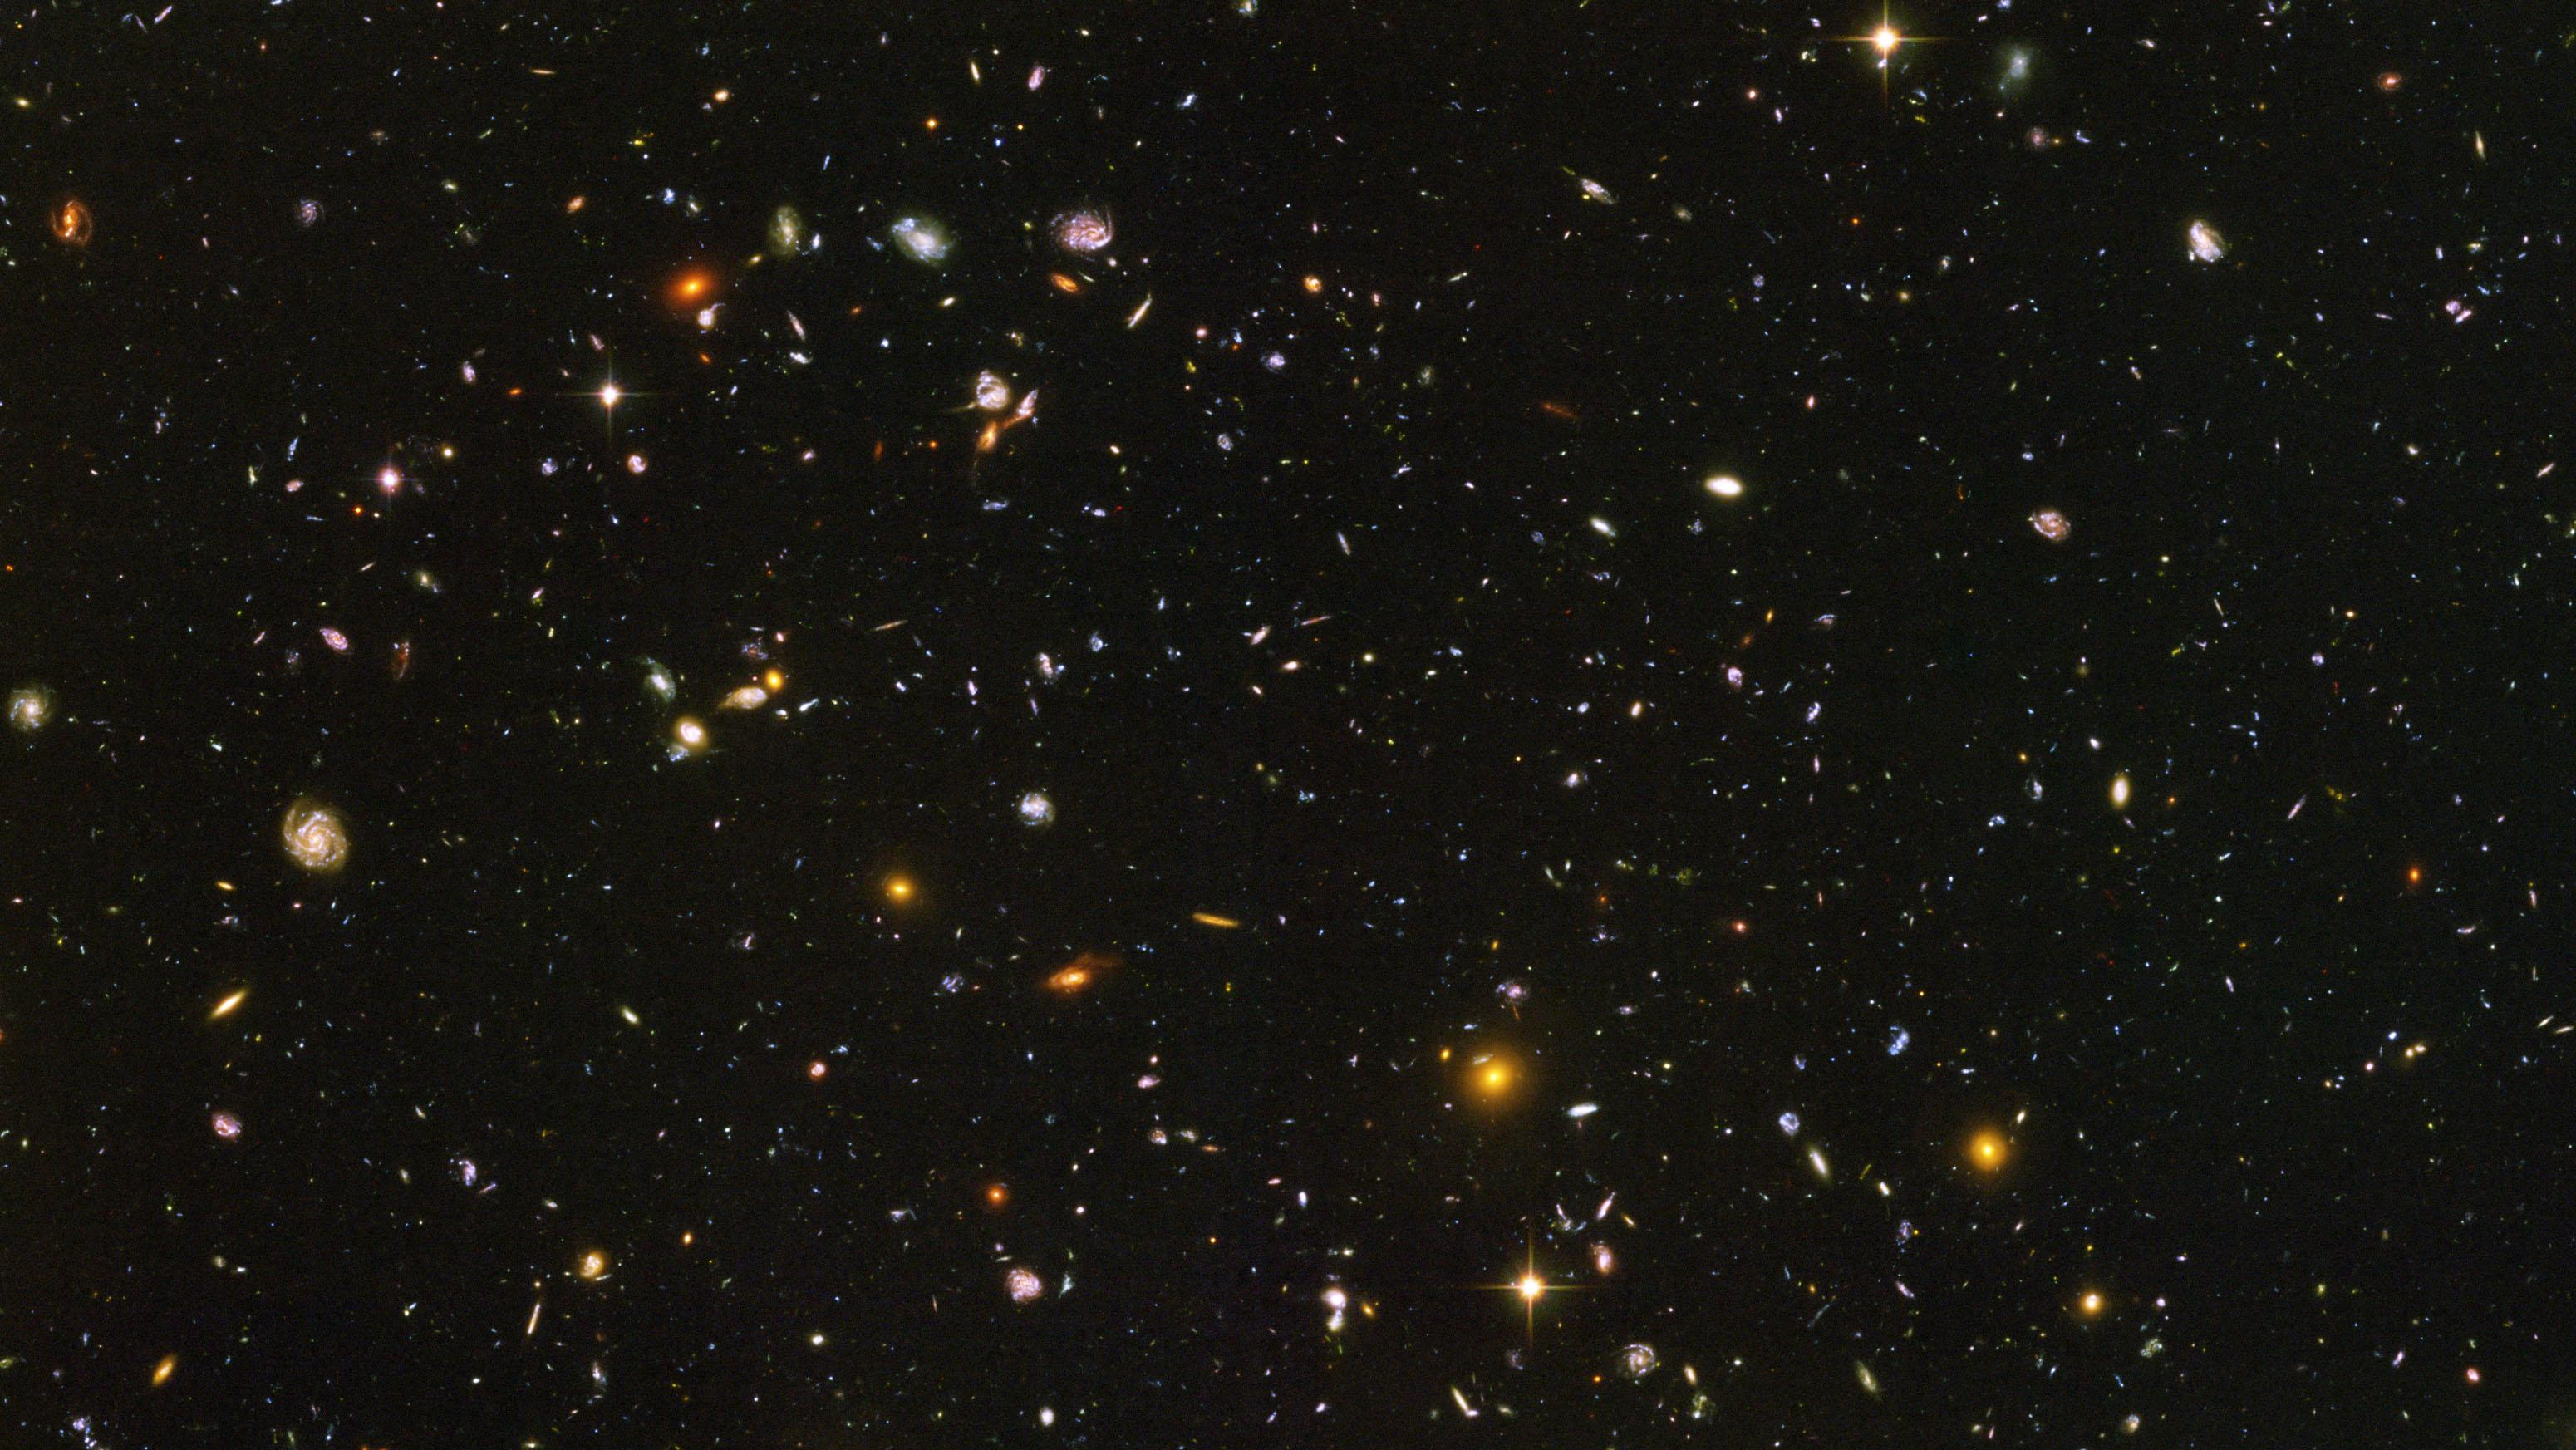 Hubble Ultra Deep Field Wallpaper 3100x1745